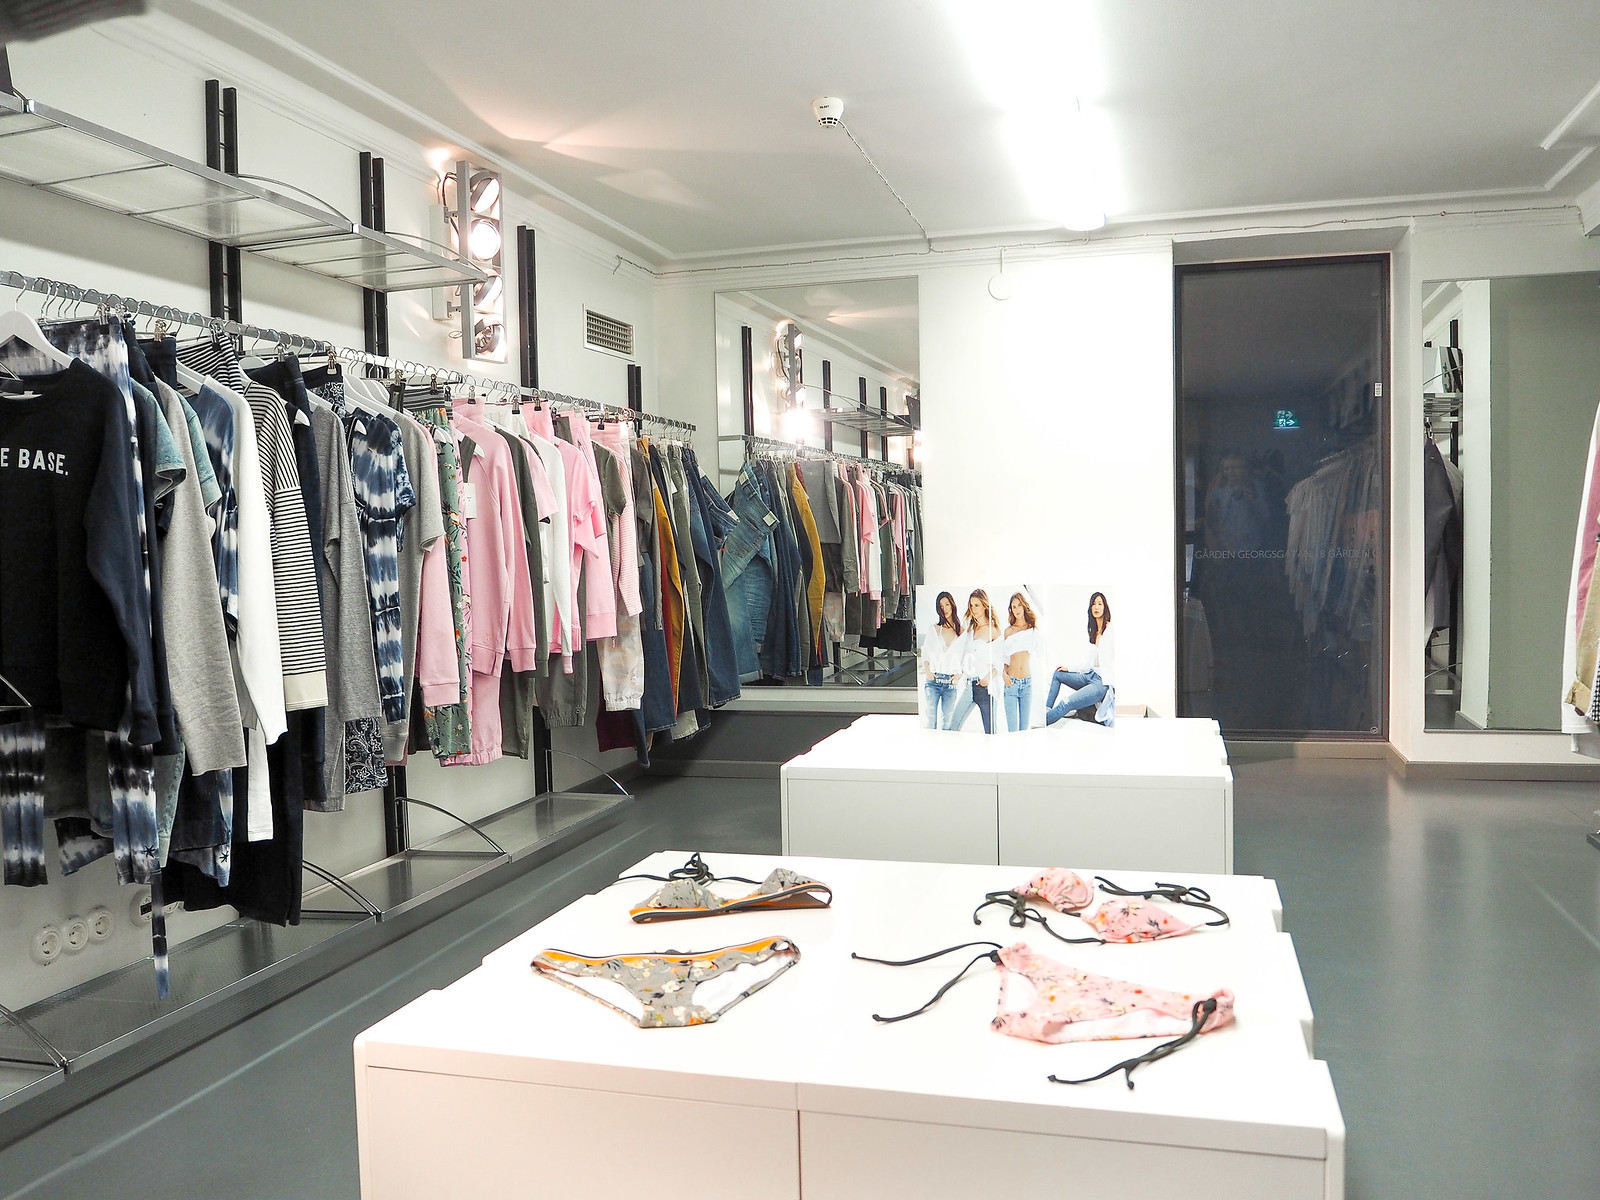 Trendeal pr showroom